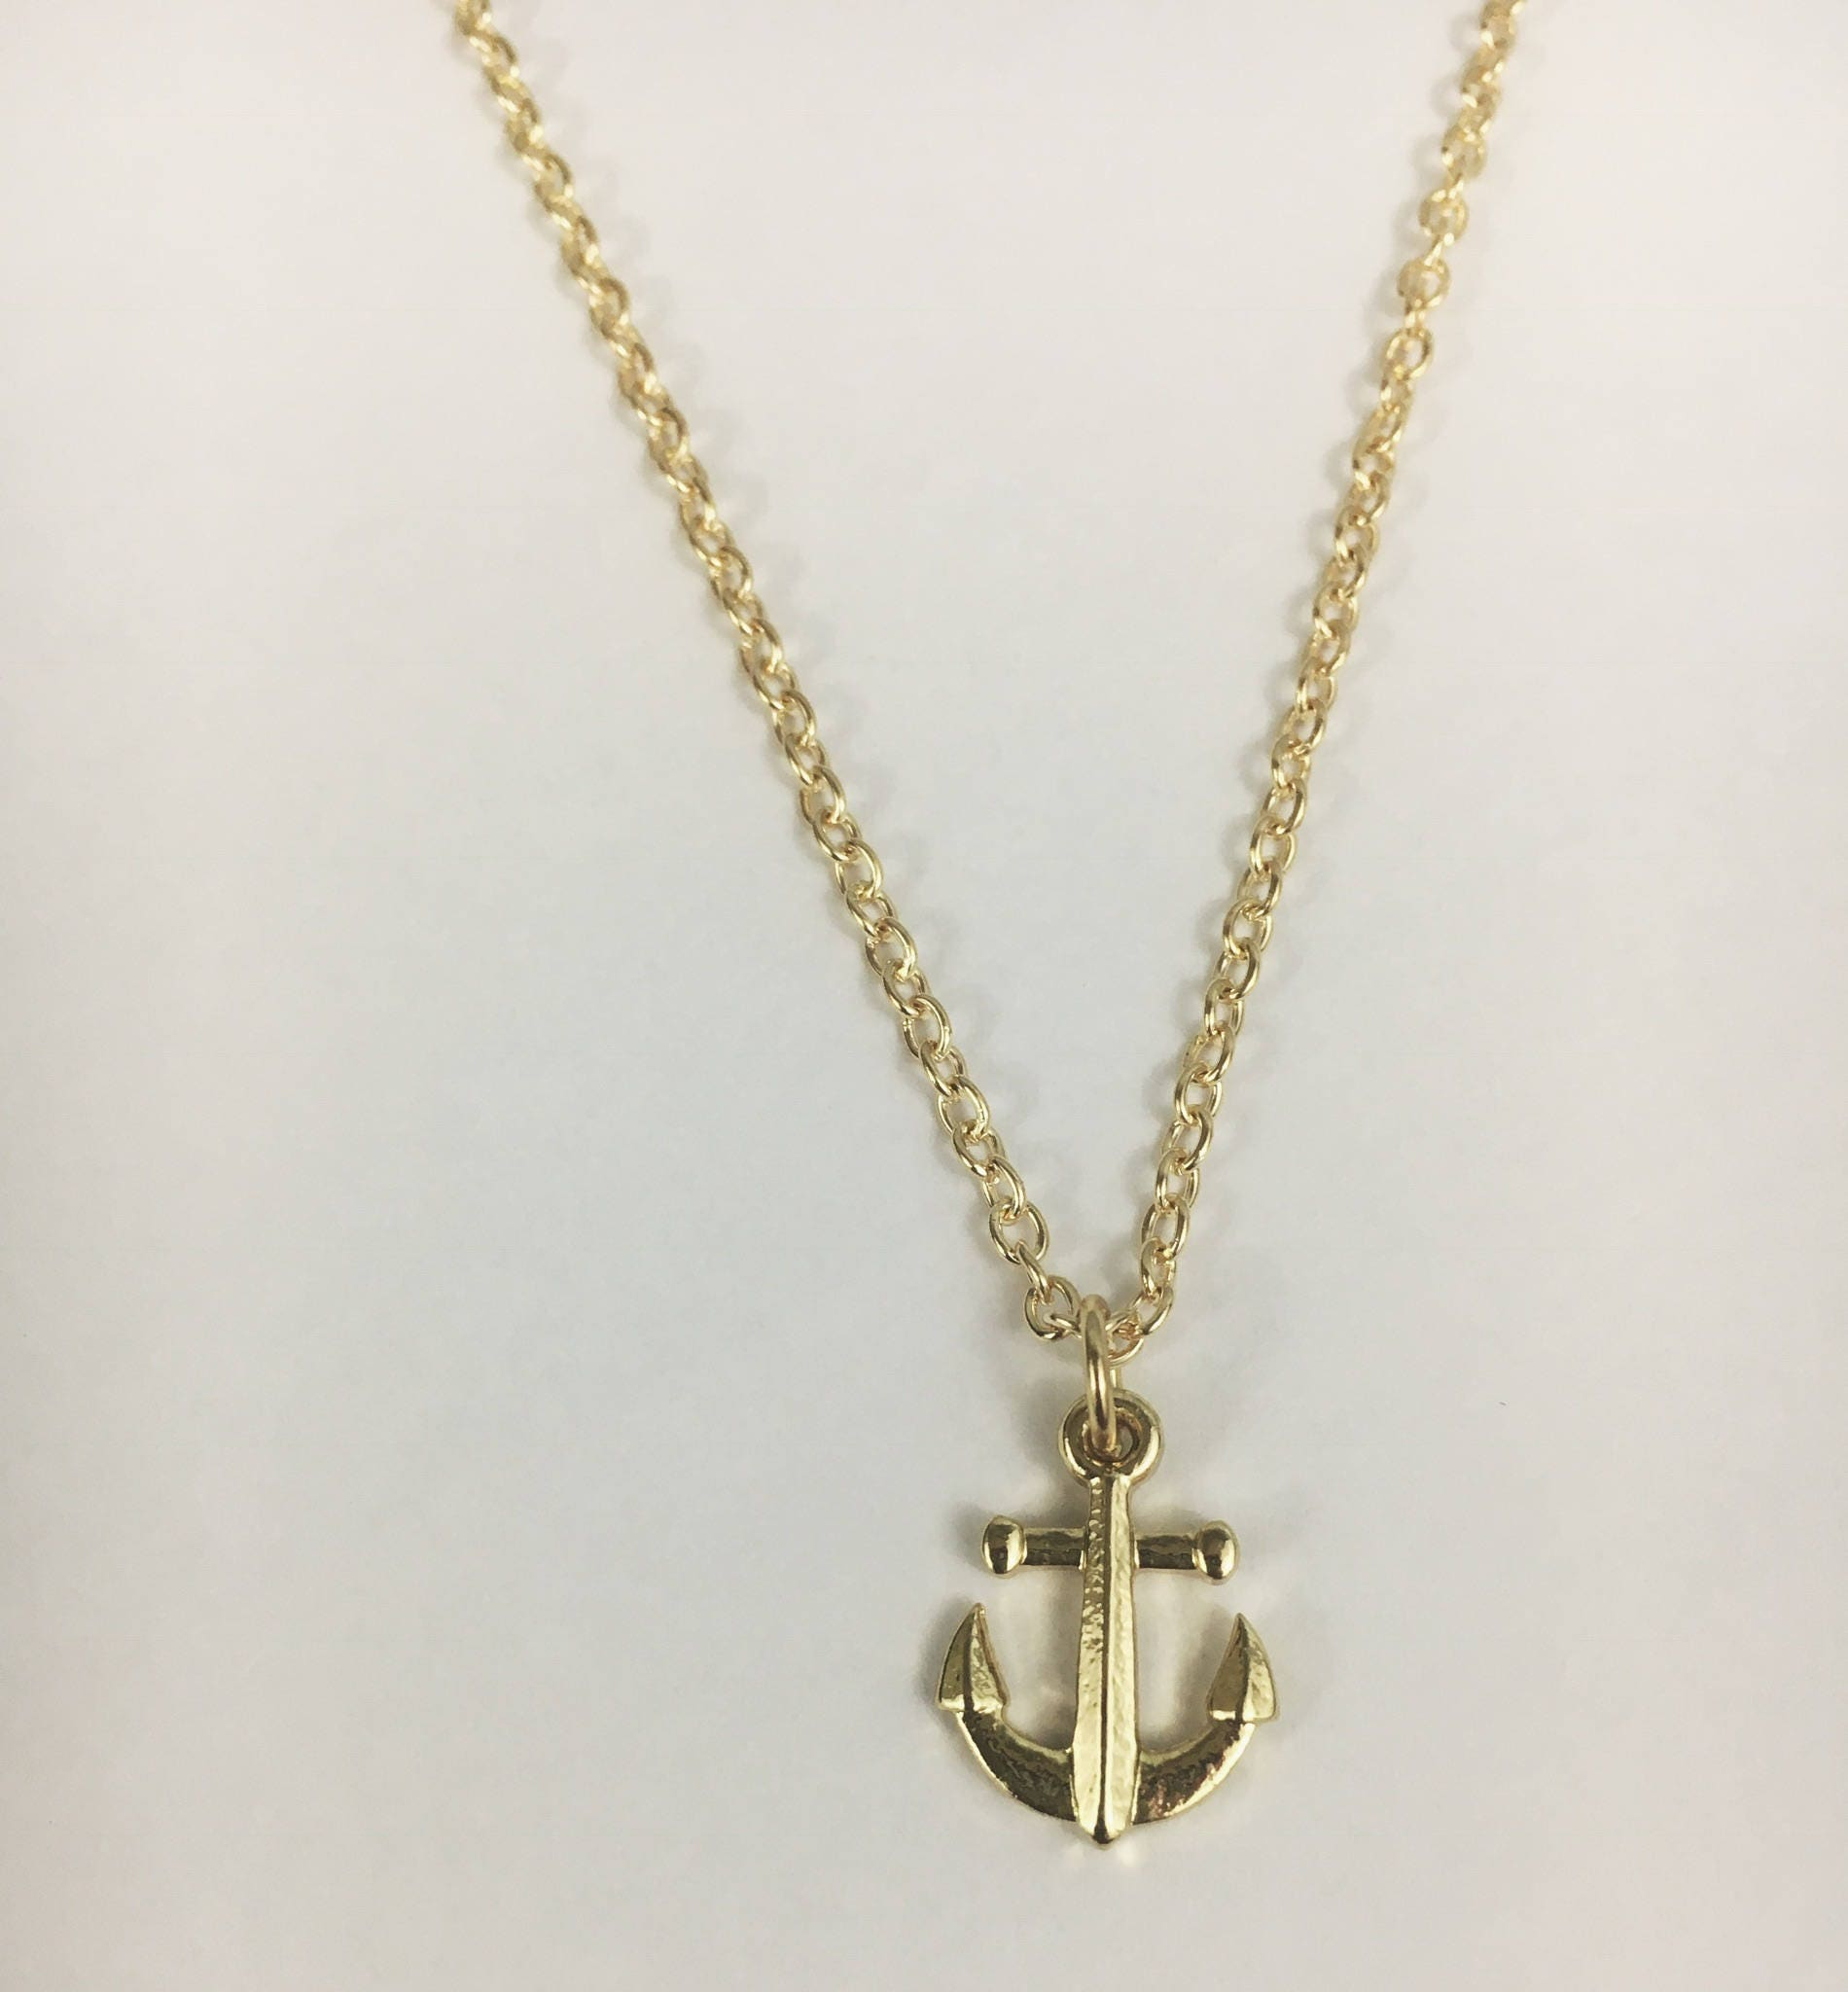 set pendant anchor products chain sail hooligan gold in image dainty necklace boutique